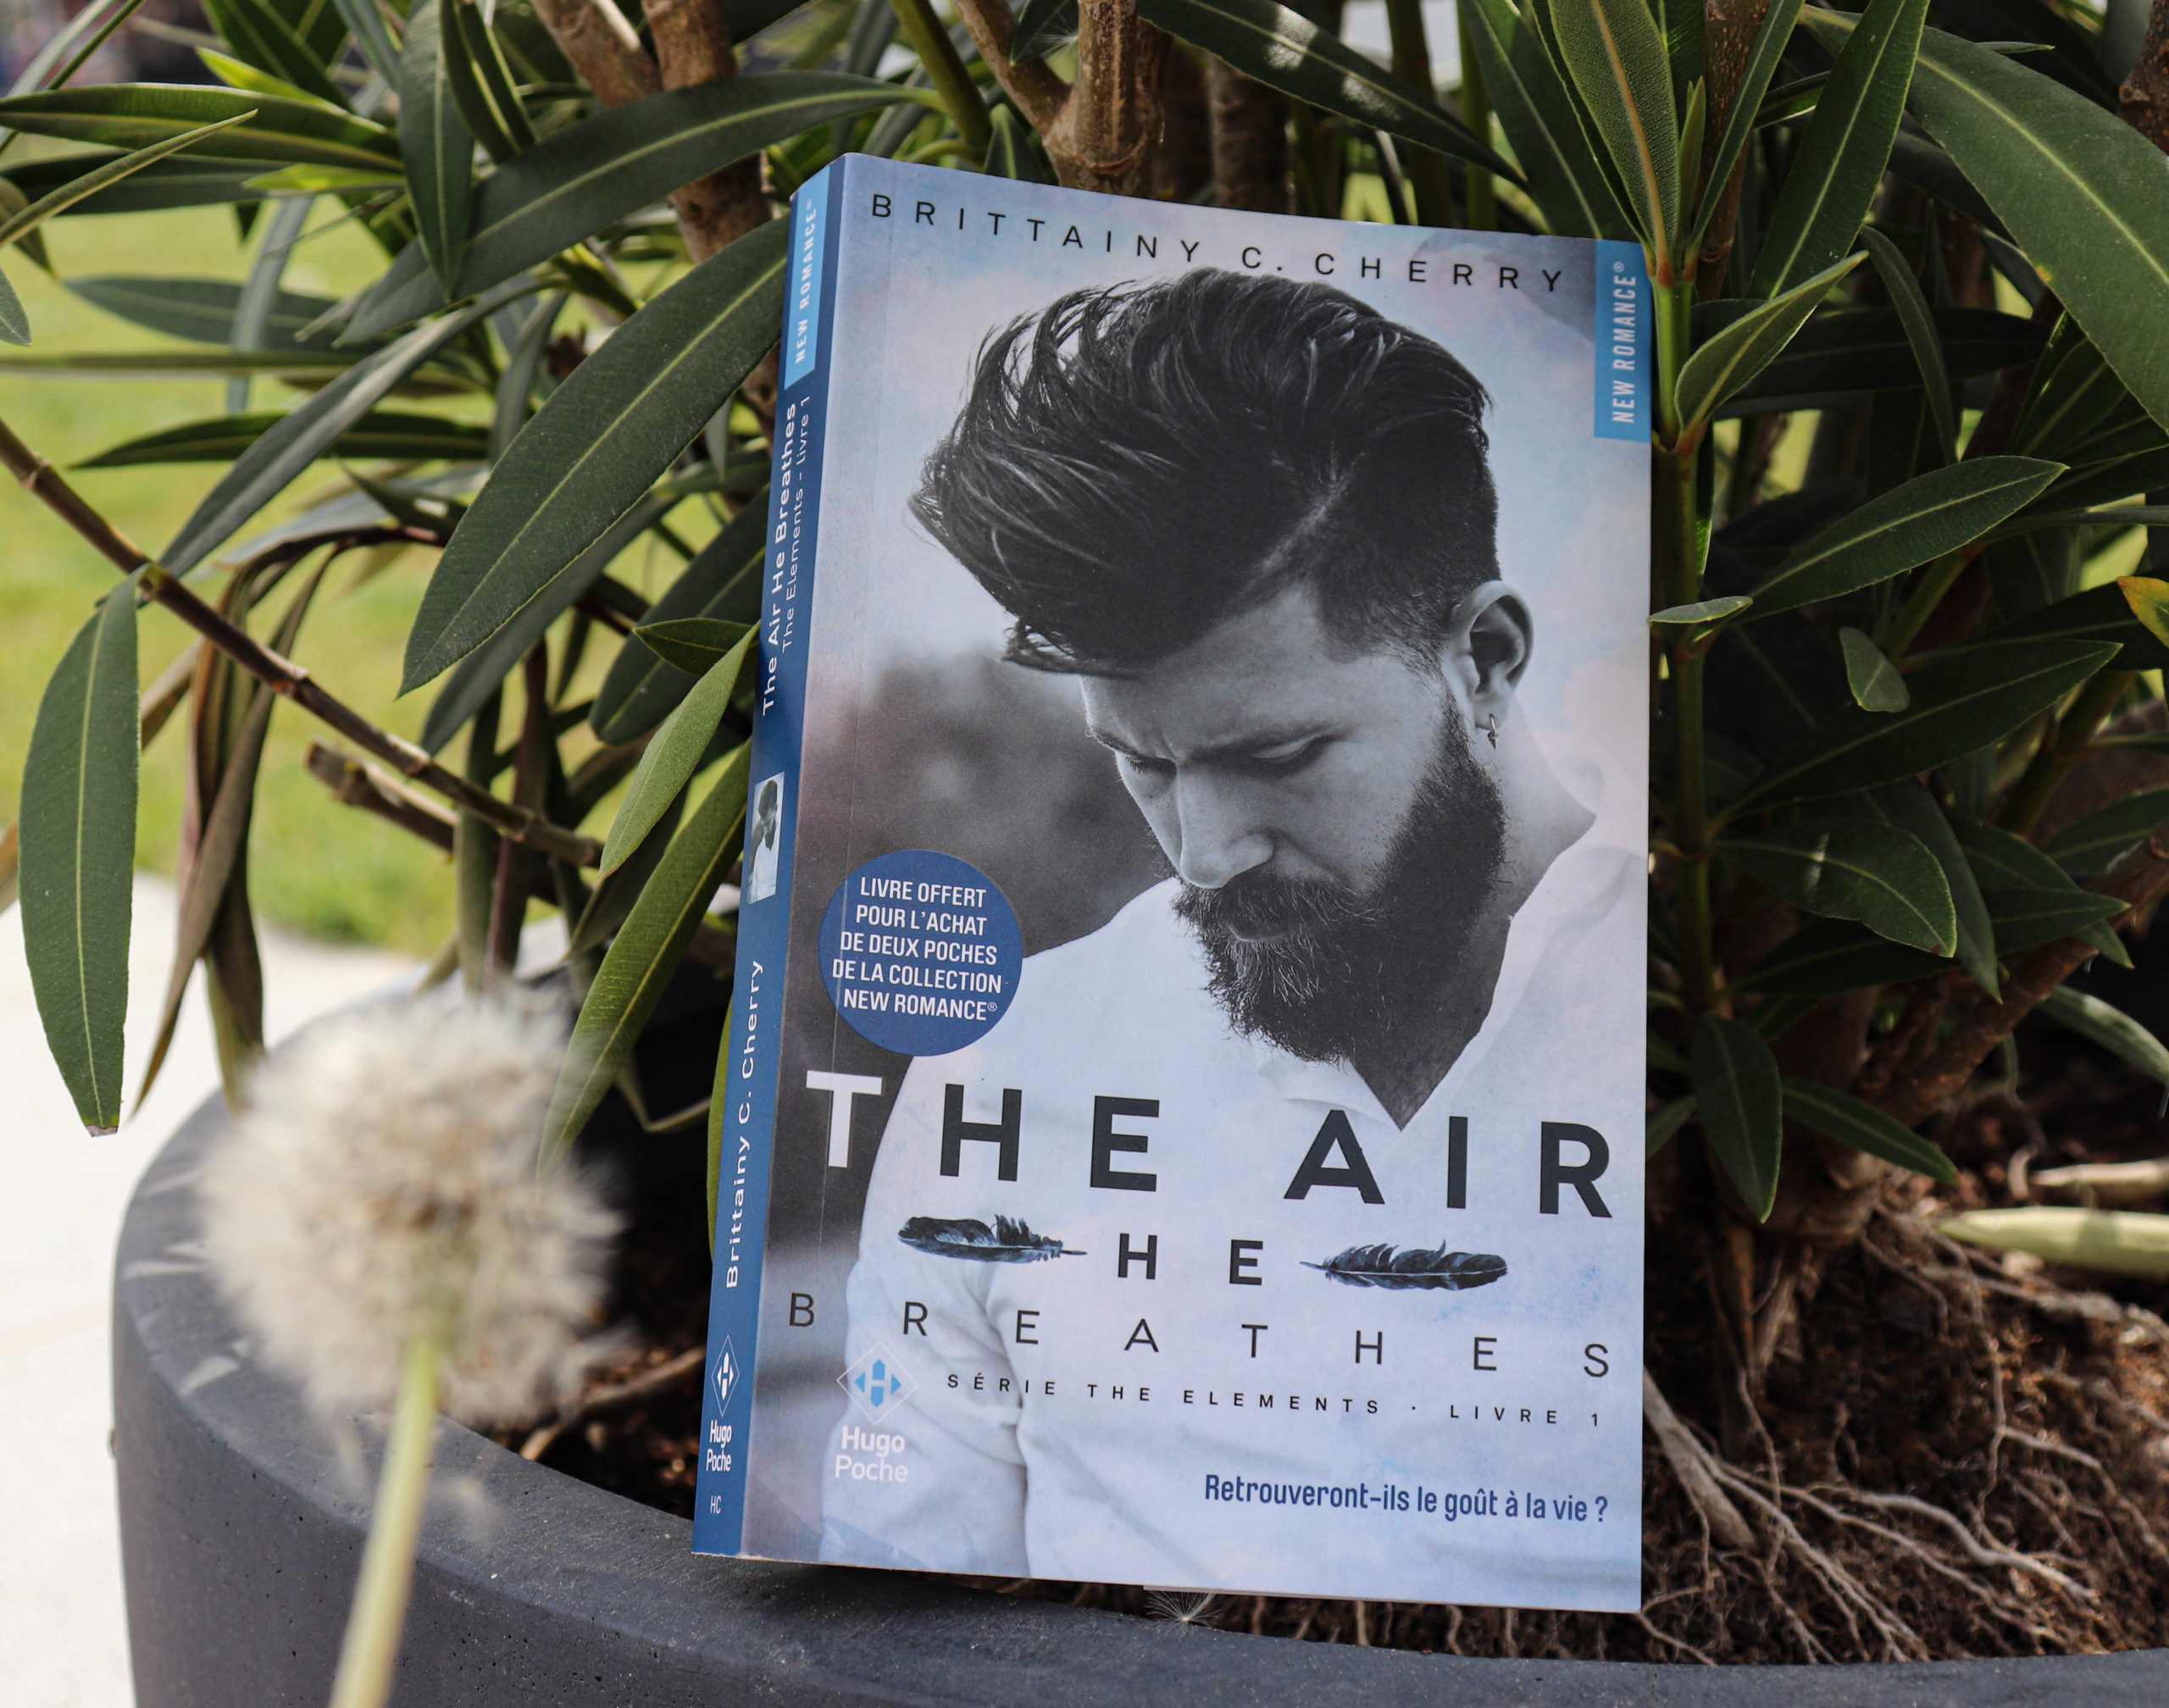 The Elements #1 – The air he breathes – Brittainy C. Cherry